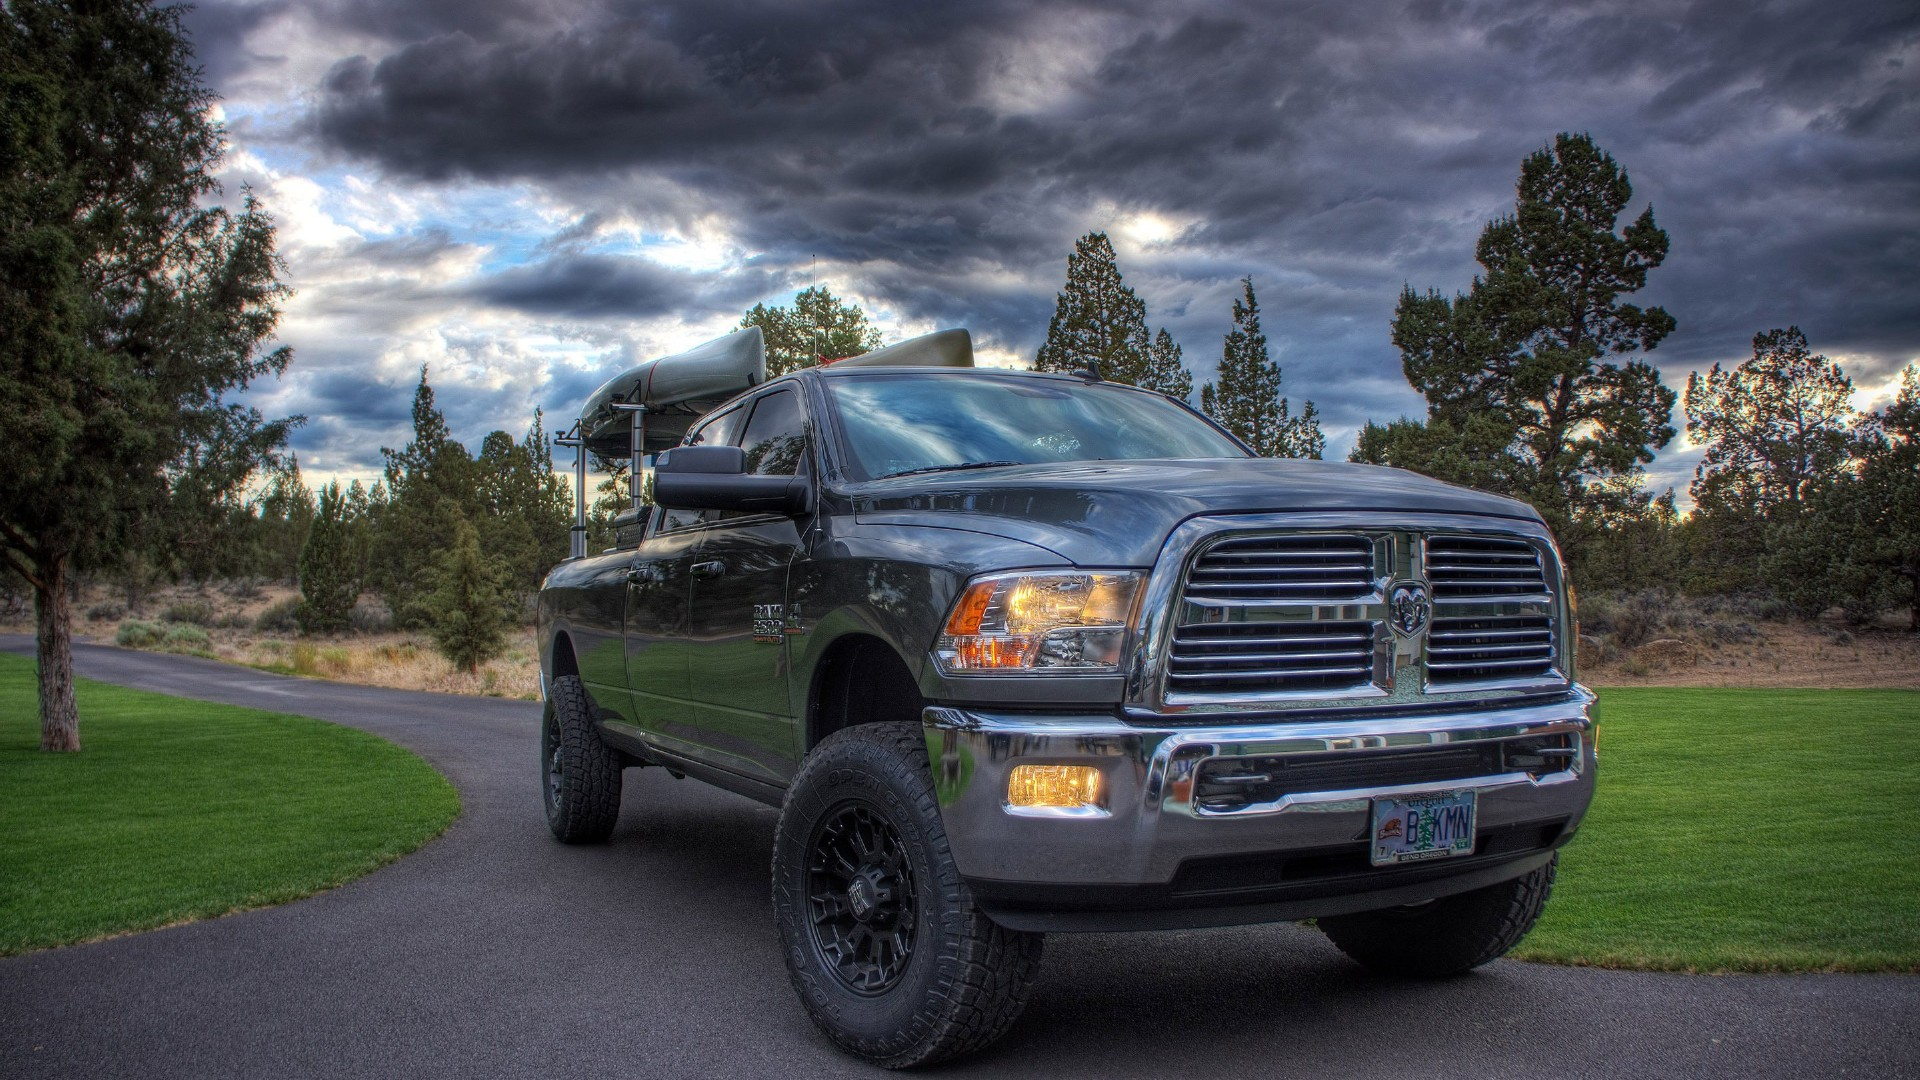 Dodge Truck Wallpapers 44 Wallpapers U2013 Adorable Wallpapers Total Update